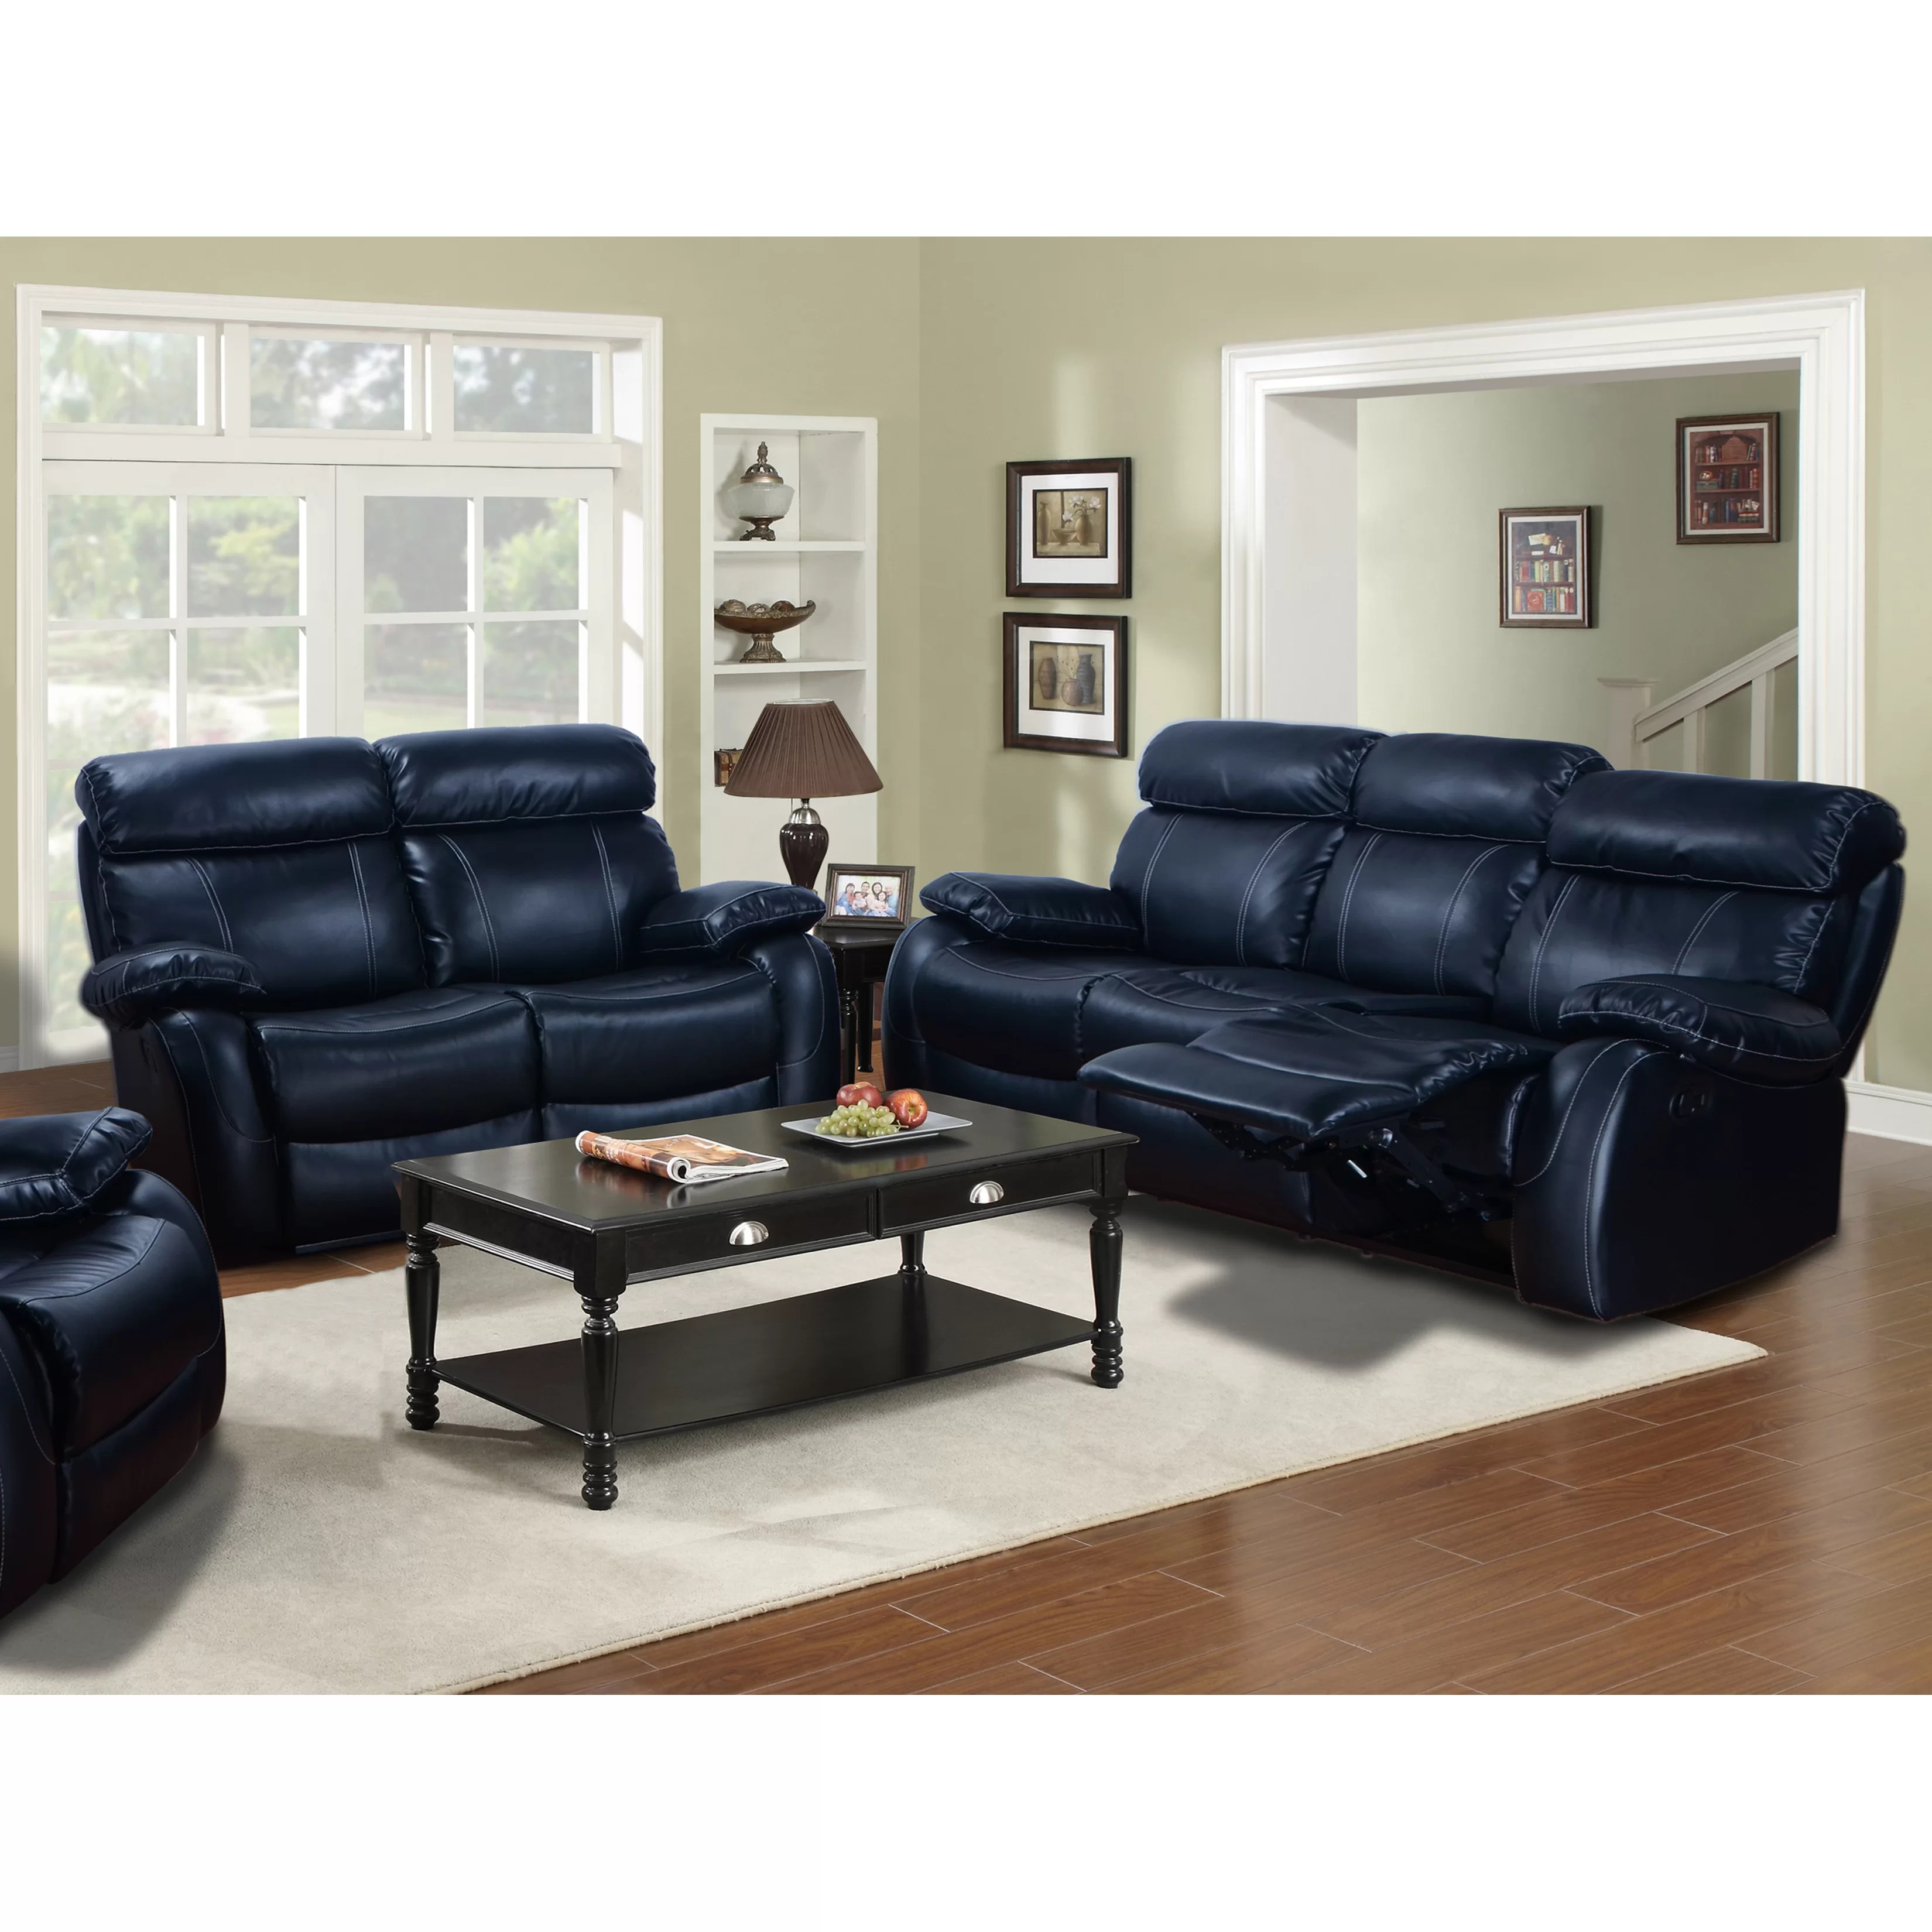 omaha sofa for sale by owner upholstery fabric singapore beverly fine furniture and loveseat set